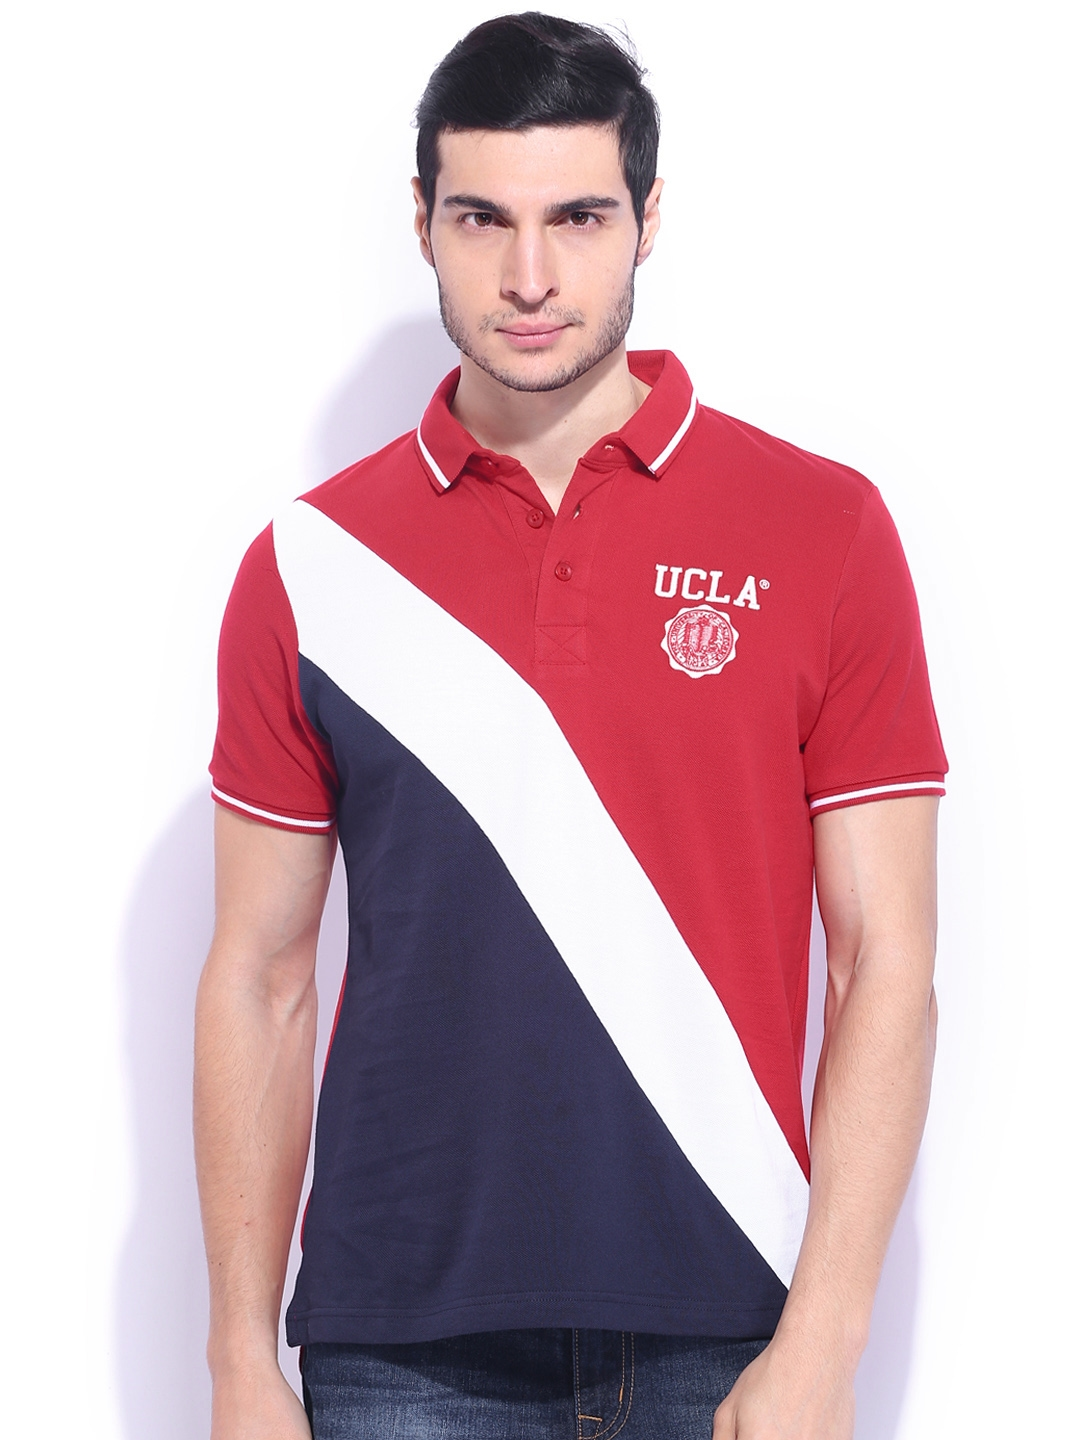 f7c318886e8d Buy UCLA Red & White Polo T Shirt - Tshirts for Men 1011577 | Myntra